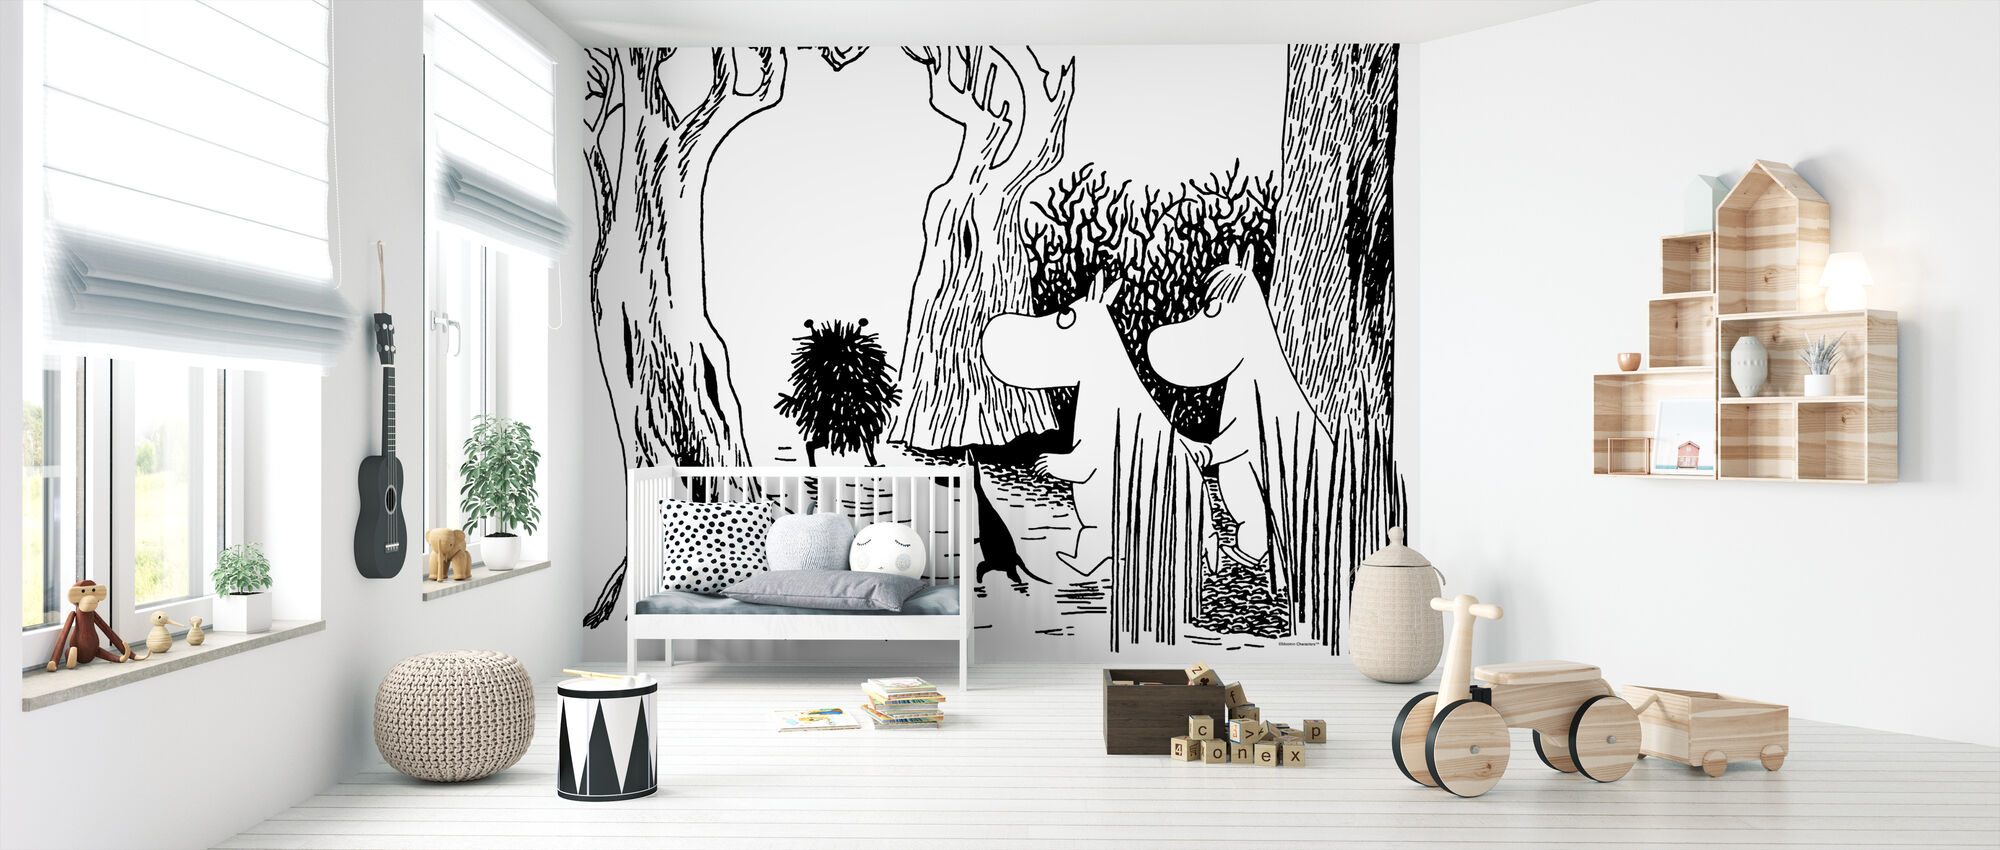 Moomin - Stinky - Wallpaper - Nursery